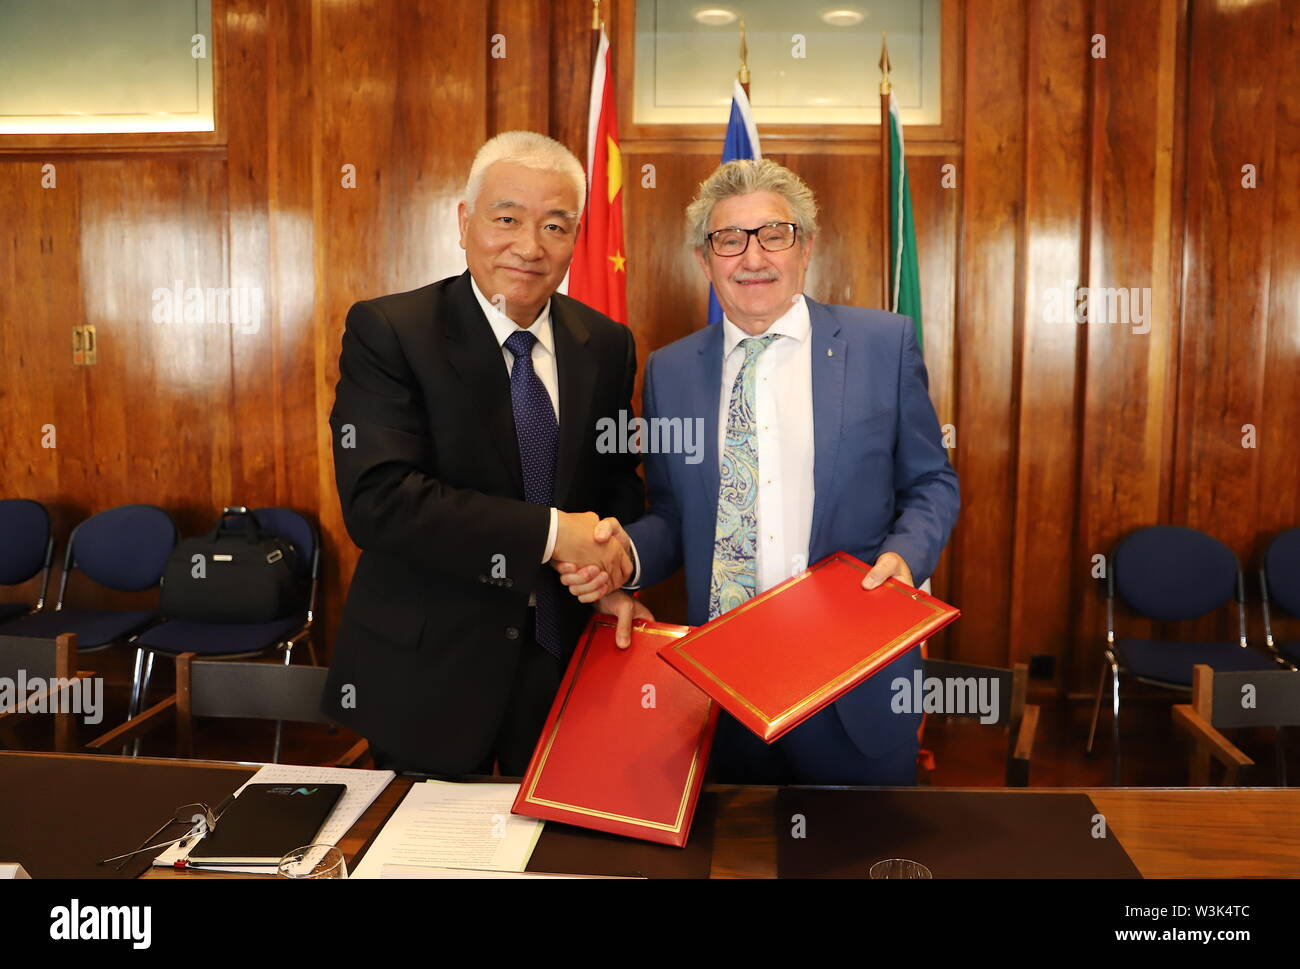 (190716) -- DUBLIN, July 16, 2019 (Xinhua) -- Chinese Minister of Science and Technology Wang Zhigang (L) shakes hands with John Halligan, Irish minister of state for training, skills, innovation, research and development, after signing a memorandum of understanding (MoU) in Dublin, Ireland, July 15, 2019. An MoU aiming to strengthen the science, technology and innovation (STI) cooperation between China and Ireland was signed here on Monday.   Under the MoU, which is valid for five years, both sides have agreed to strengthen STI cooperation in areas including advanced materials, information an - Stock Image